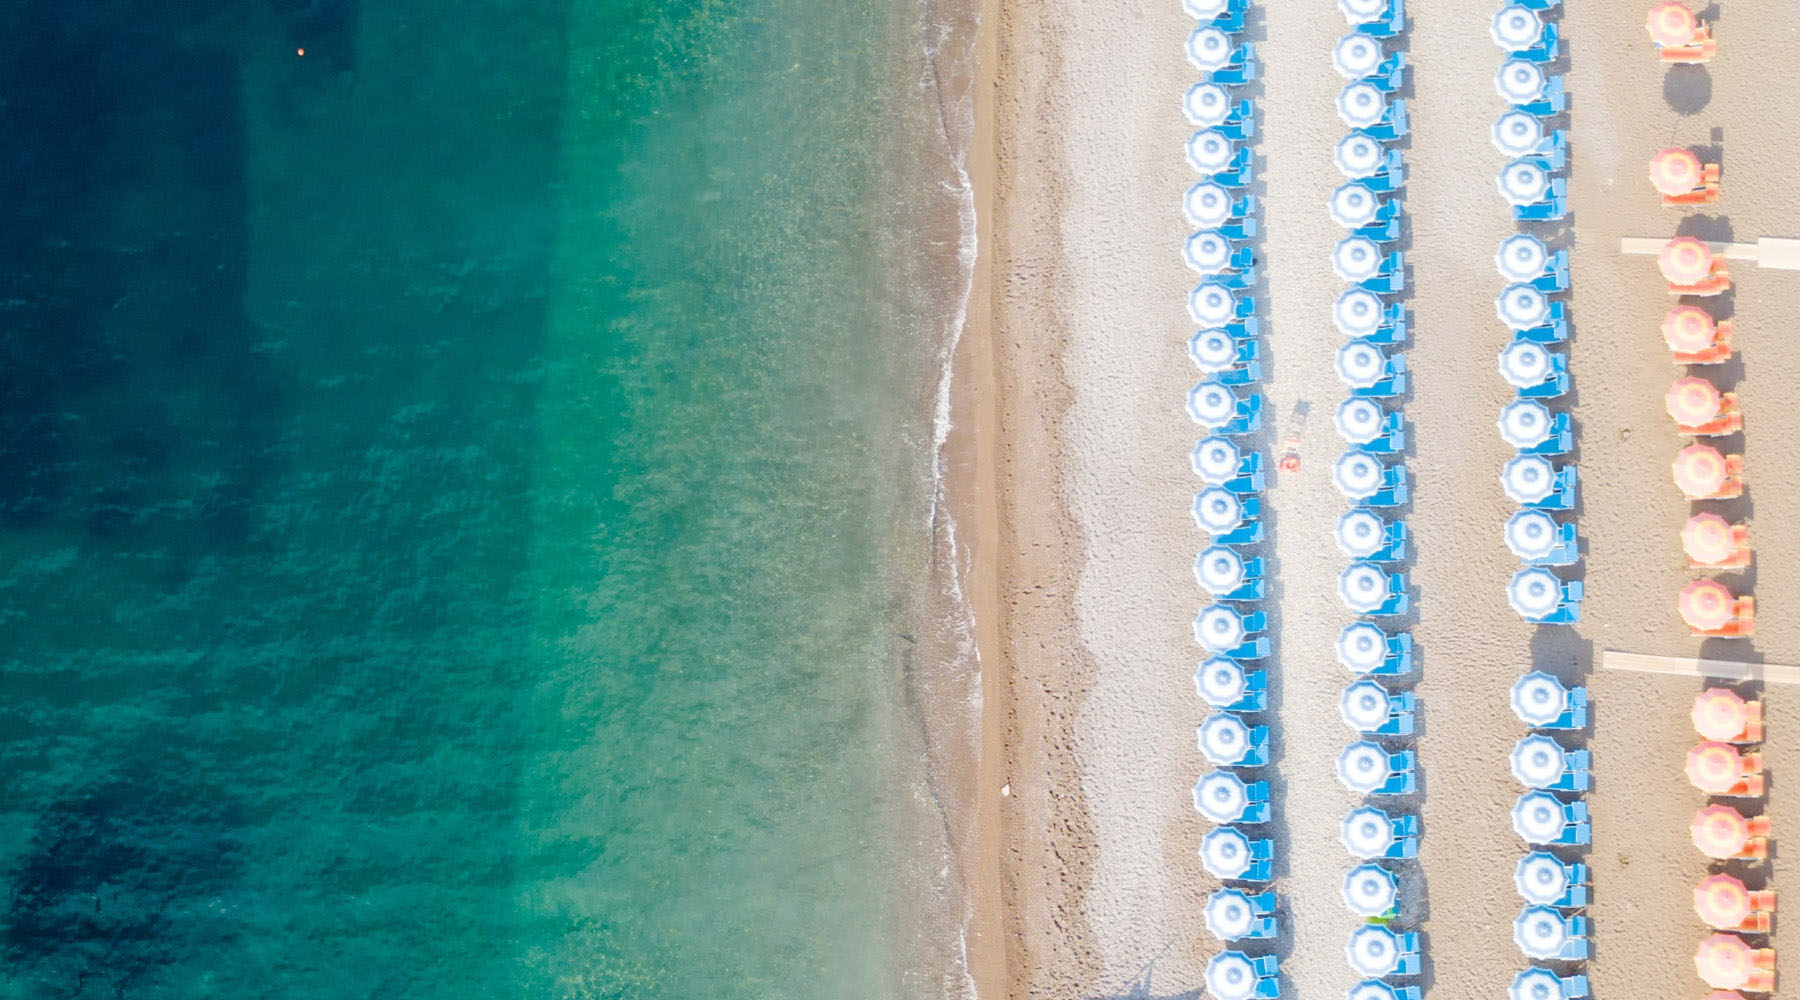 An aerial view of a beach in the Mediterranean.